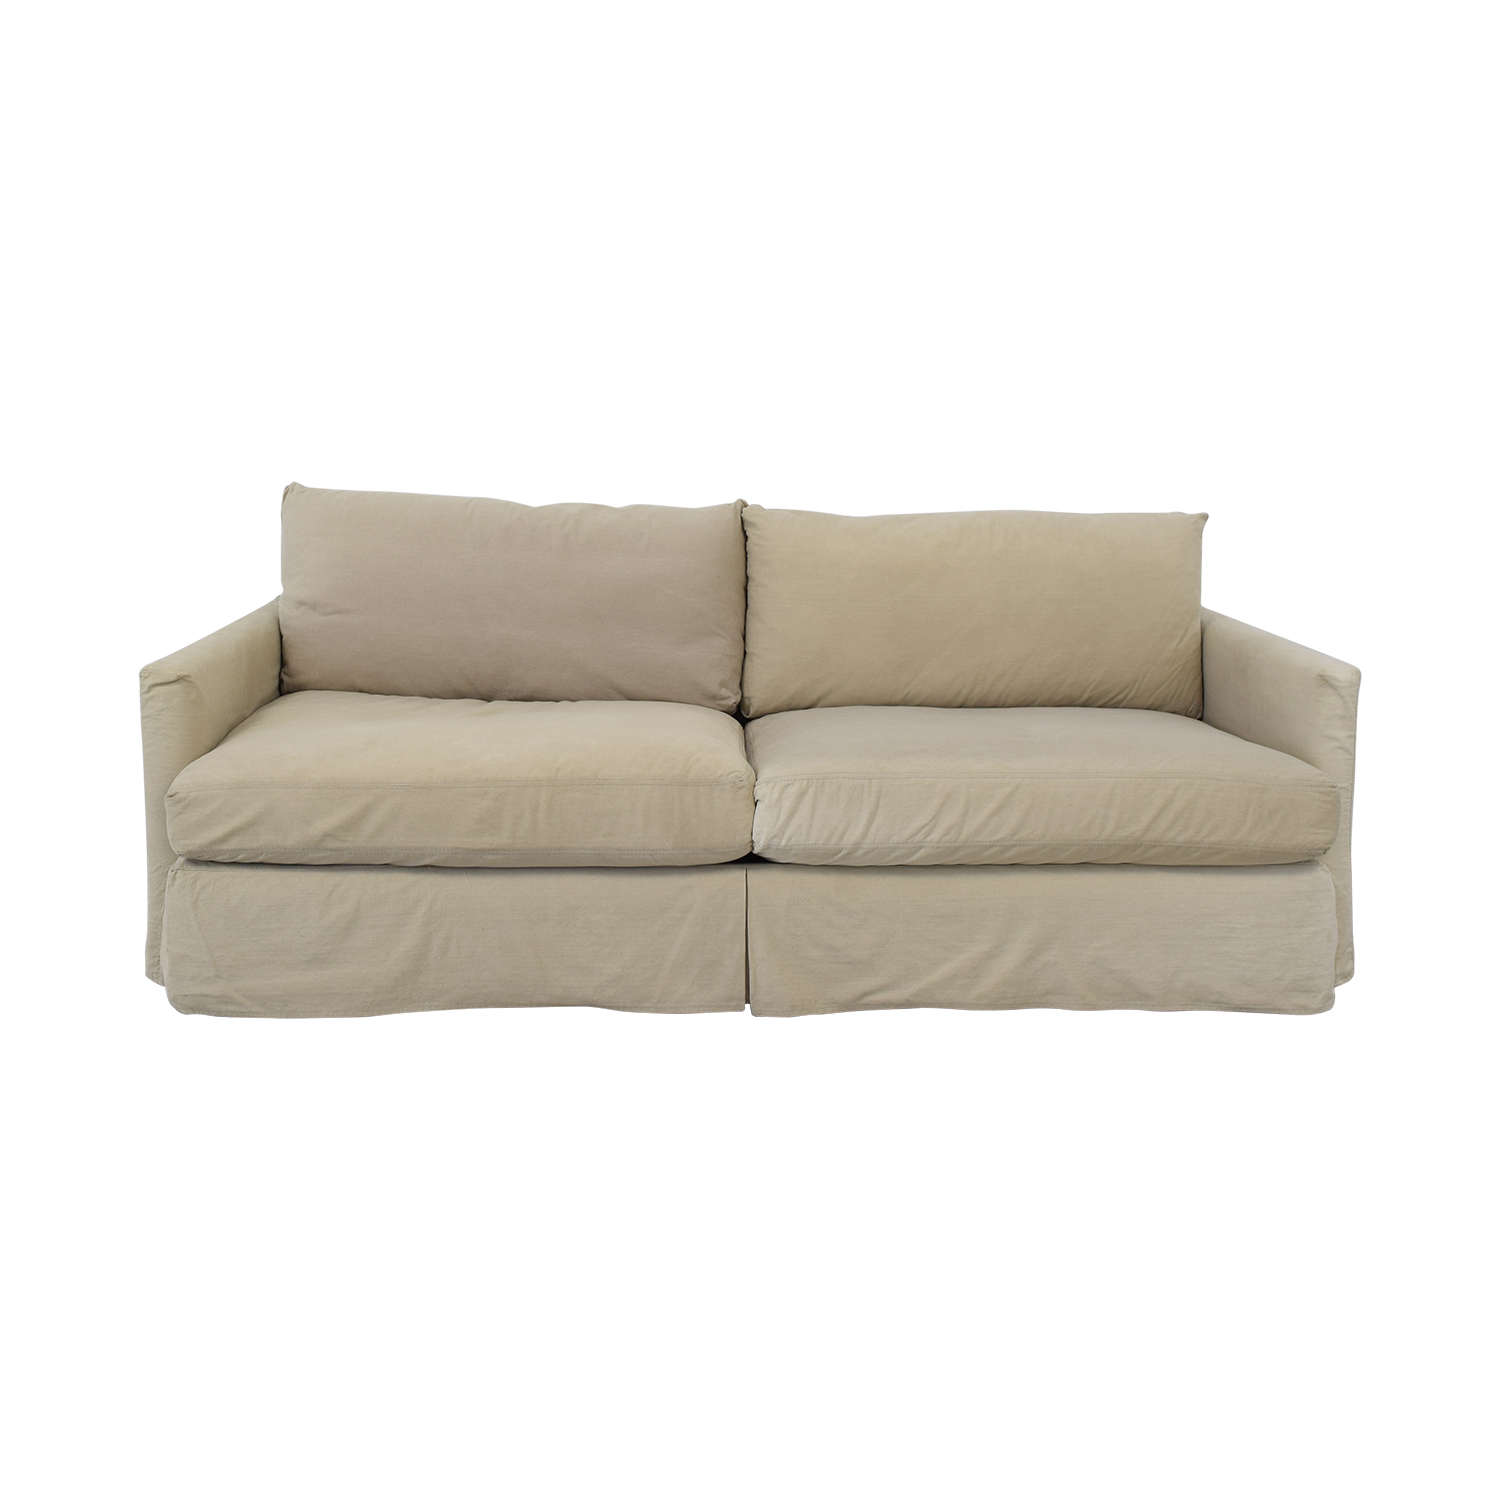 Crate & Barrel Crate & Barrel Lounge Slipcovered Sofa second hand